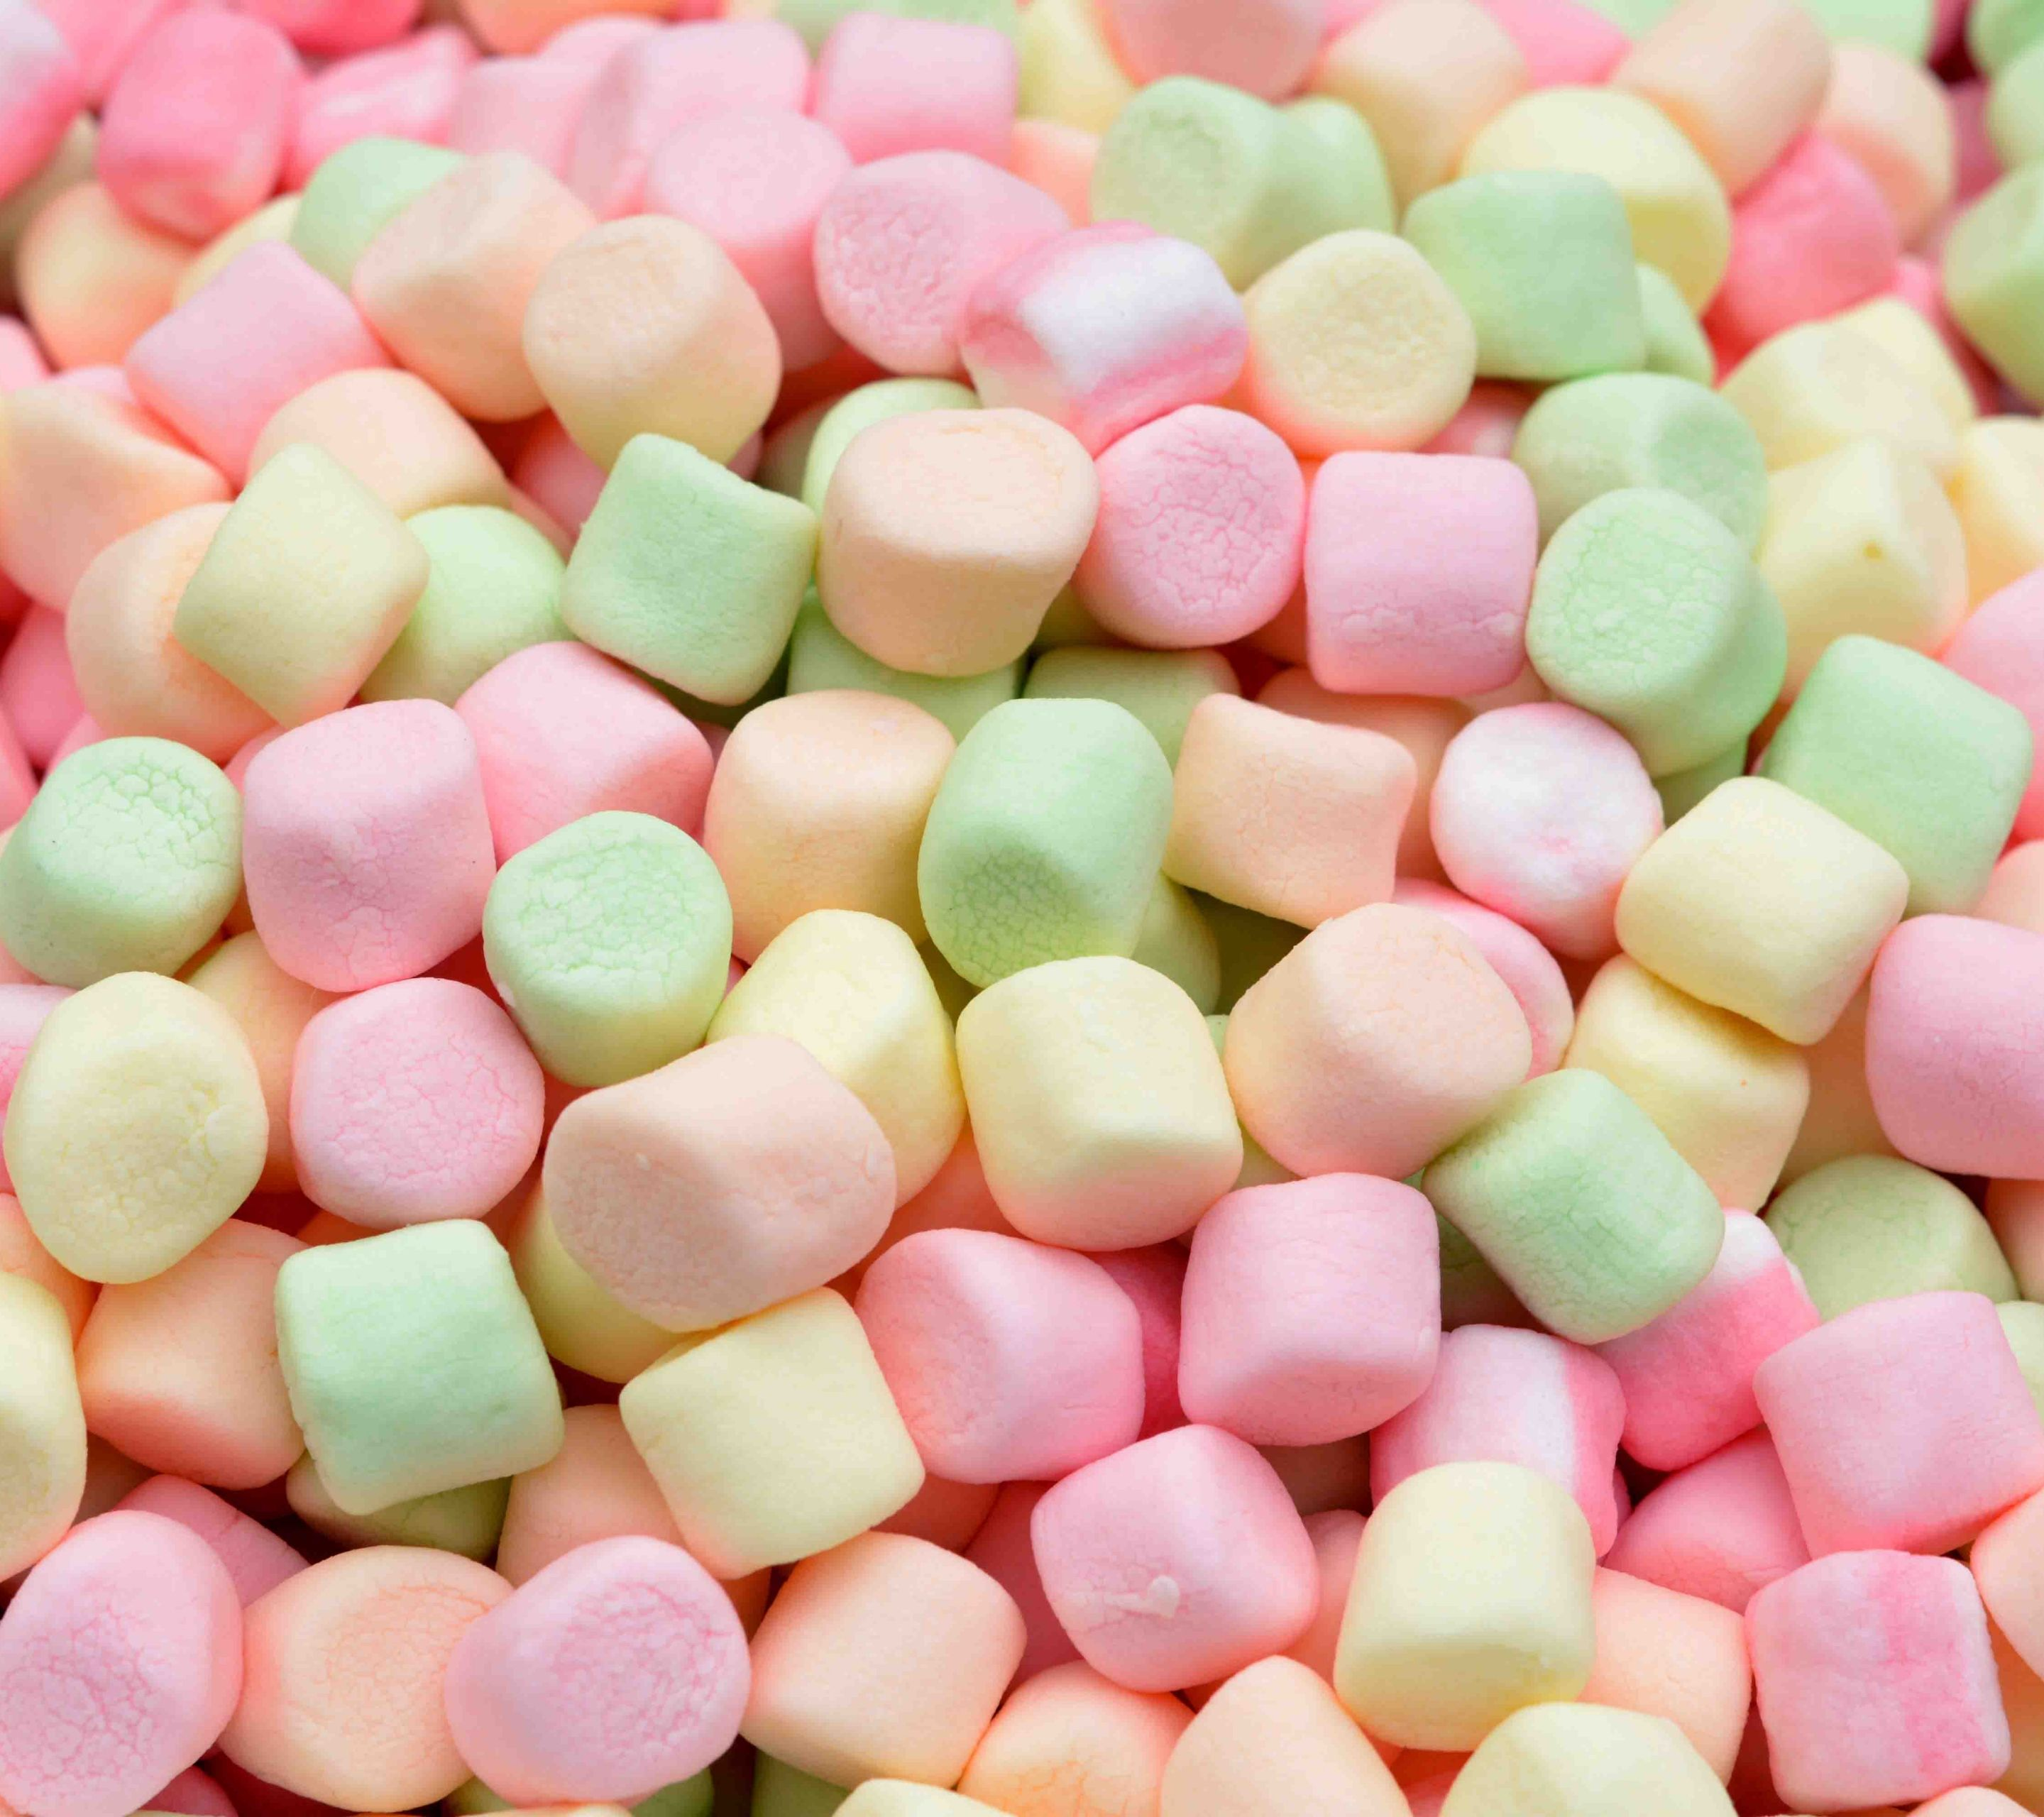 2880x2560 Food/Marshmallow (2880x2560) Wallpaper ID: 590816 - Mobile Abyss